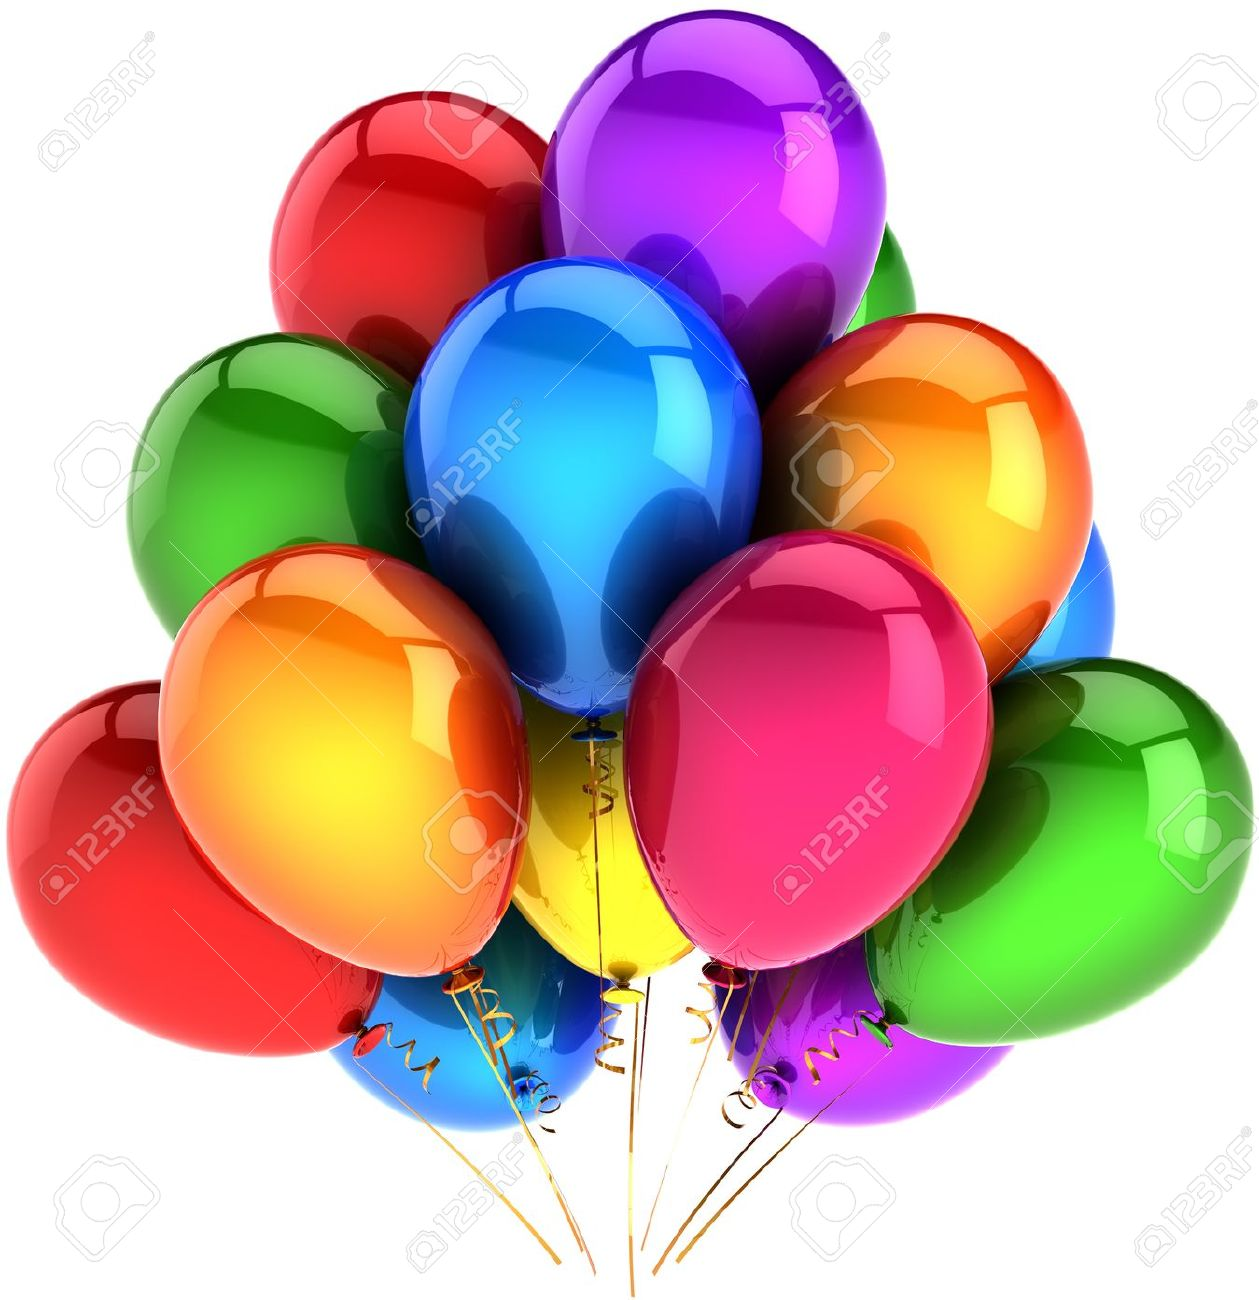 Balloons happy birthday party vacation decoration multicolored as rainbow. Happy fun joy holiday abstract. Celebration greeting card concept. Detailed render 3d. Isolated on white background Stock Photo - 10468676